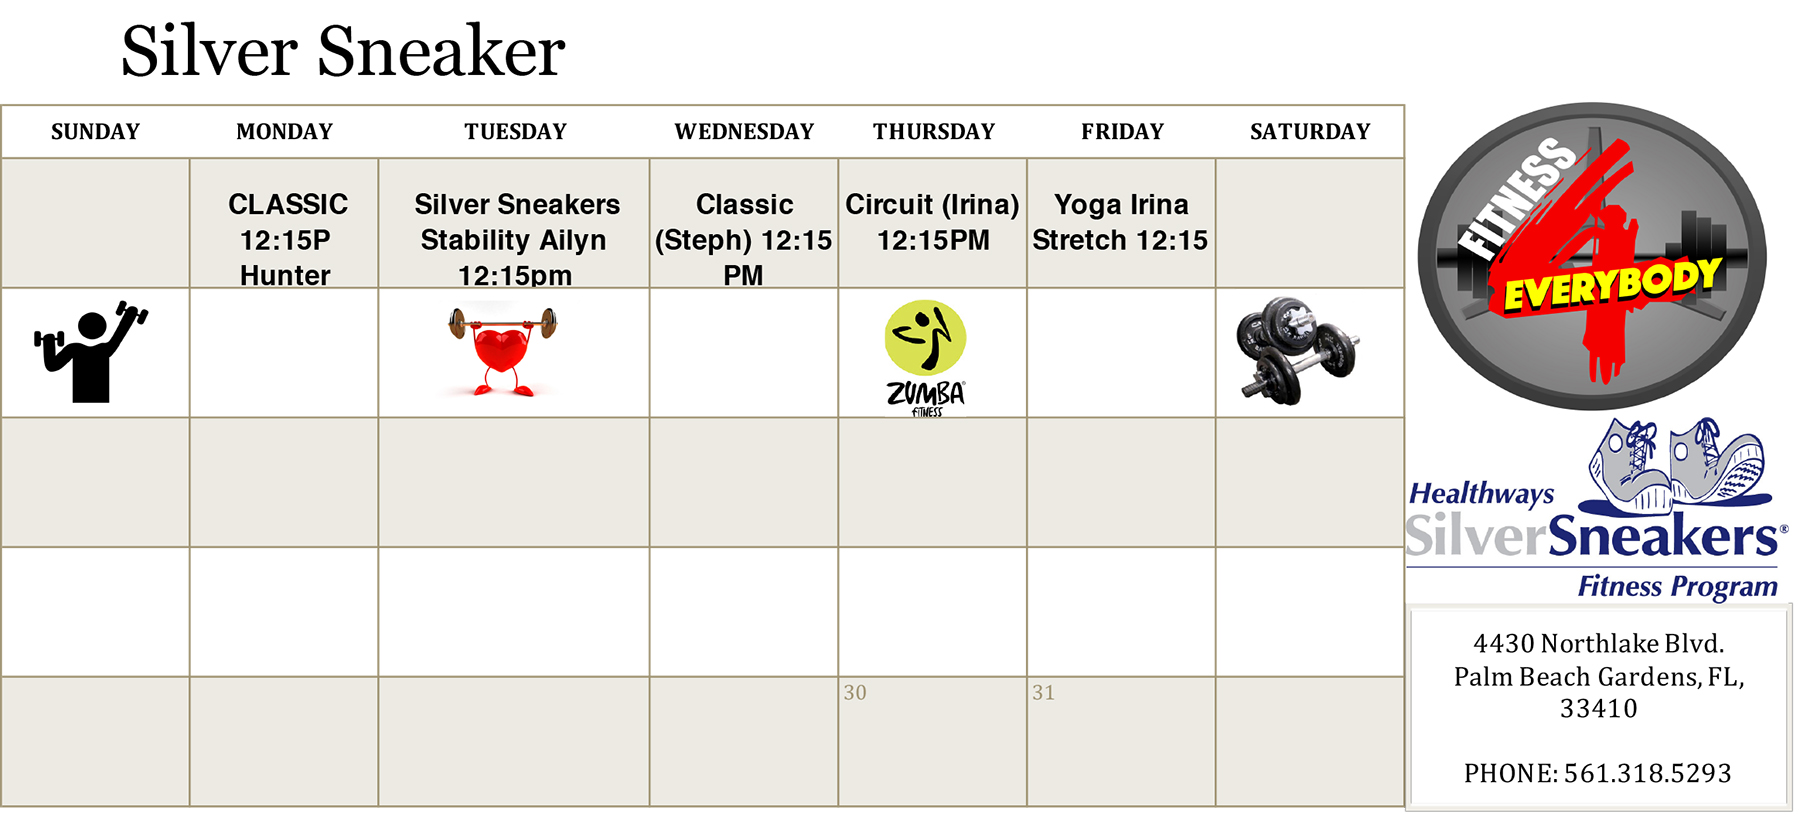 Silver Sneakers Class Schedule for March 2020